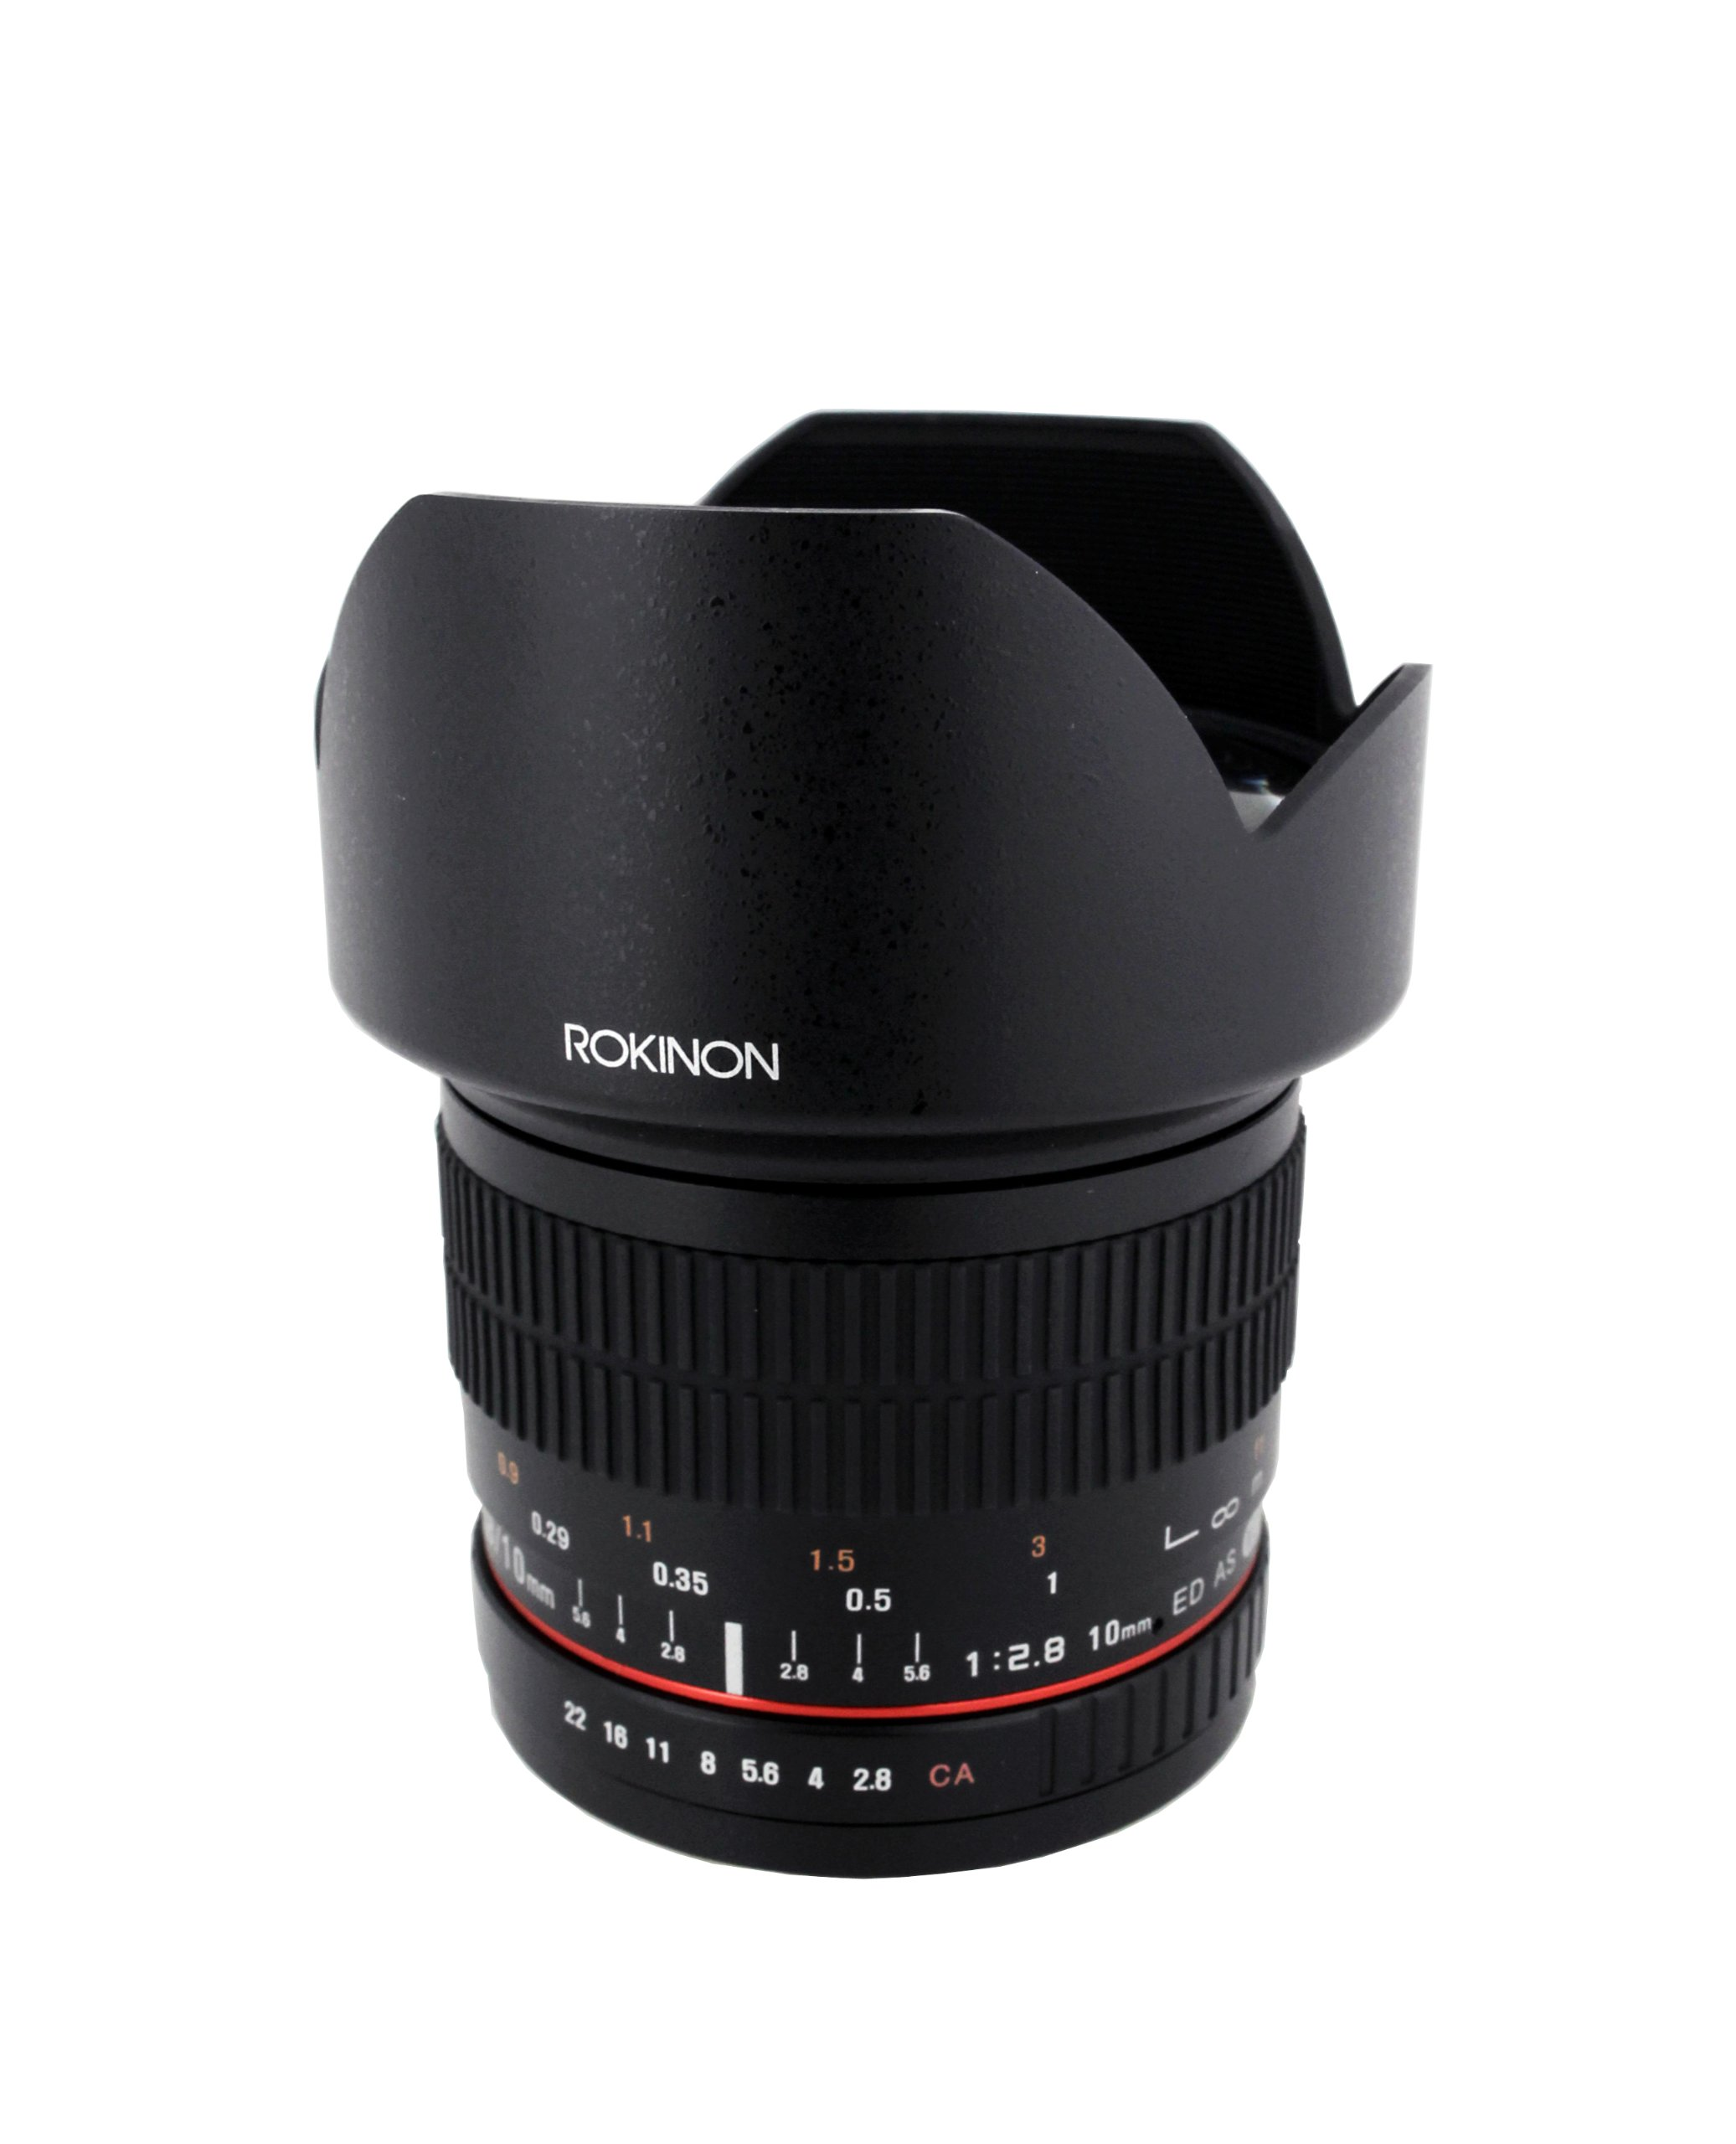 Rokinon 10mm F2.8 ED AS NCS CS Ultra Wide Angle Lens Canon EF-S Type for Canon Digital SLR Cameras  (10M-C) by Rokinon